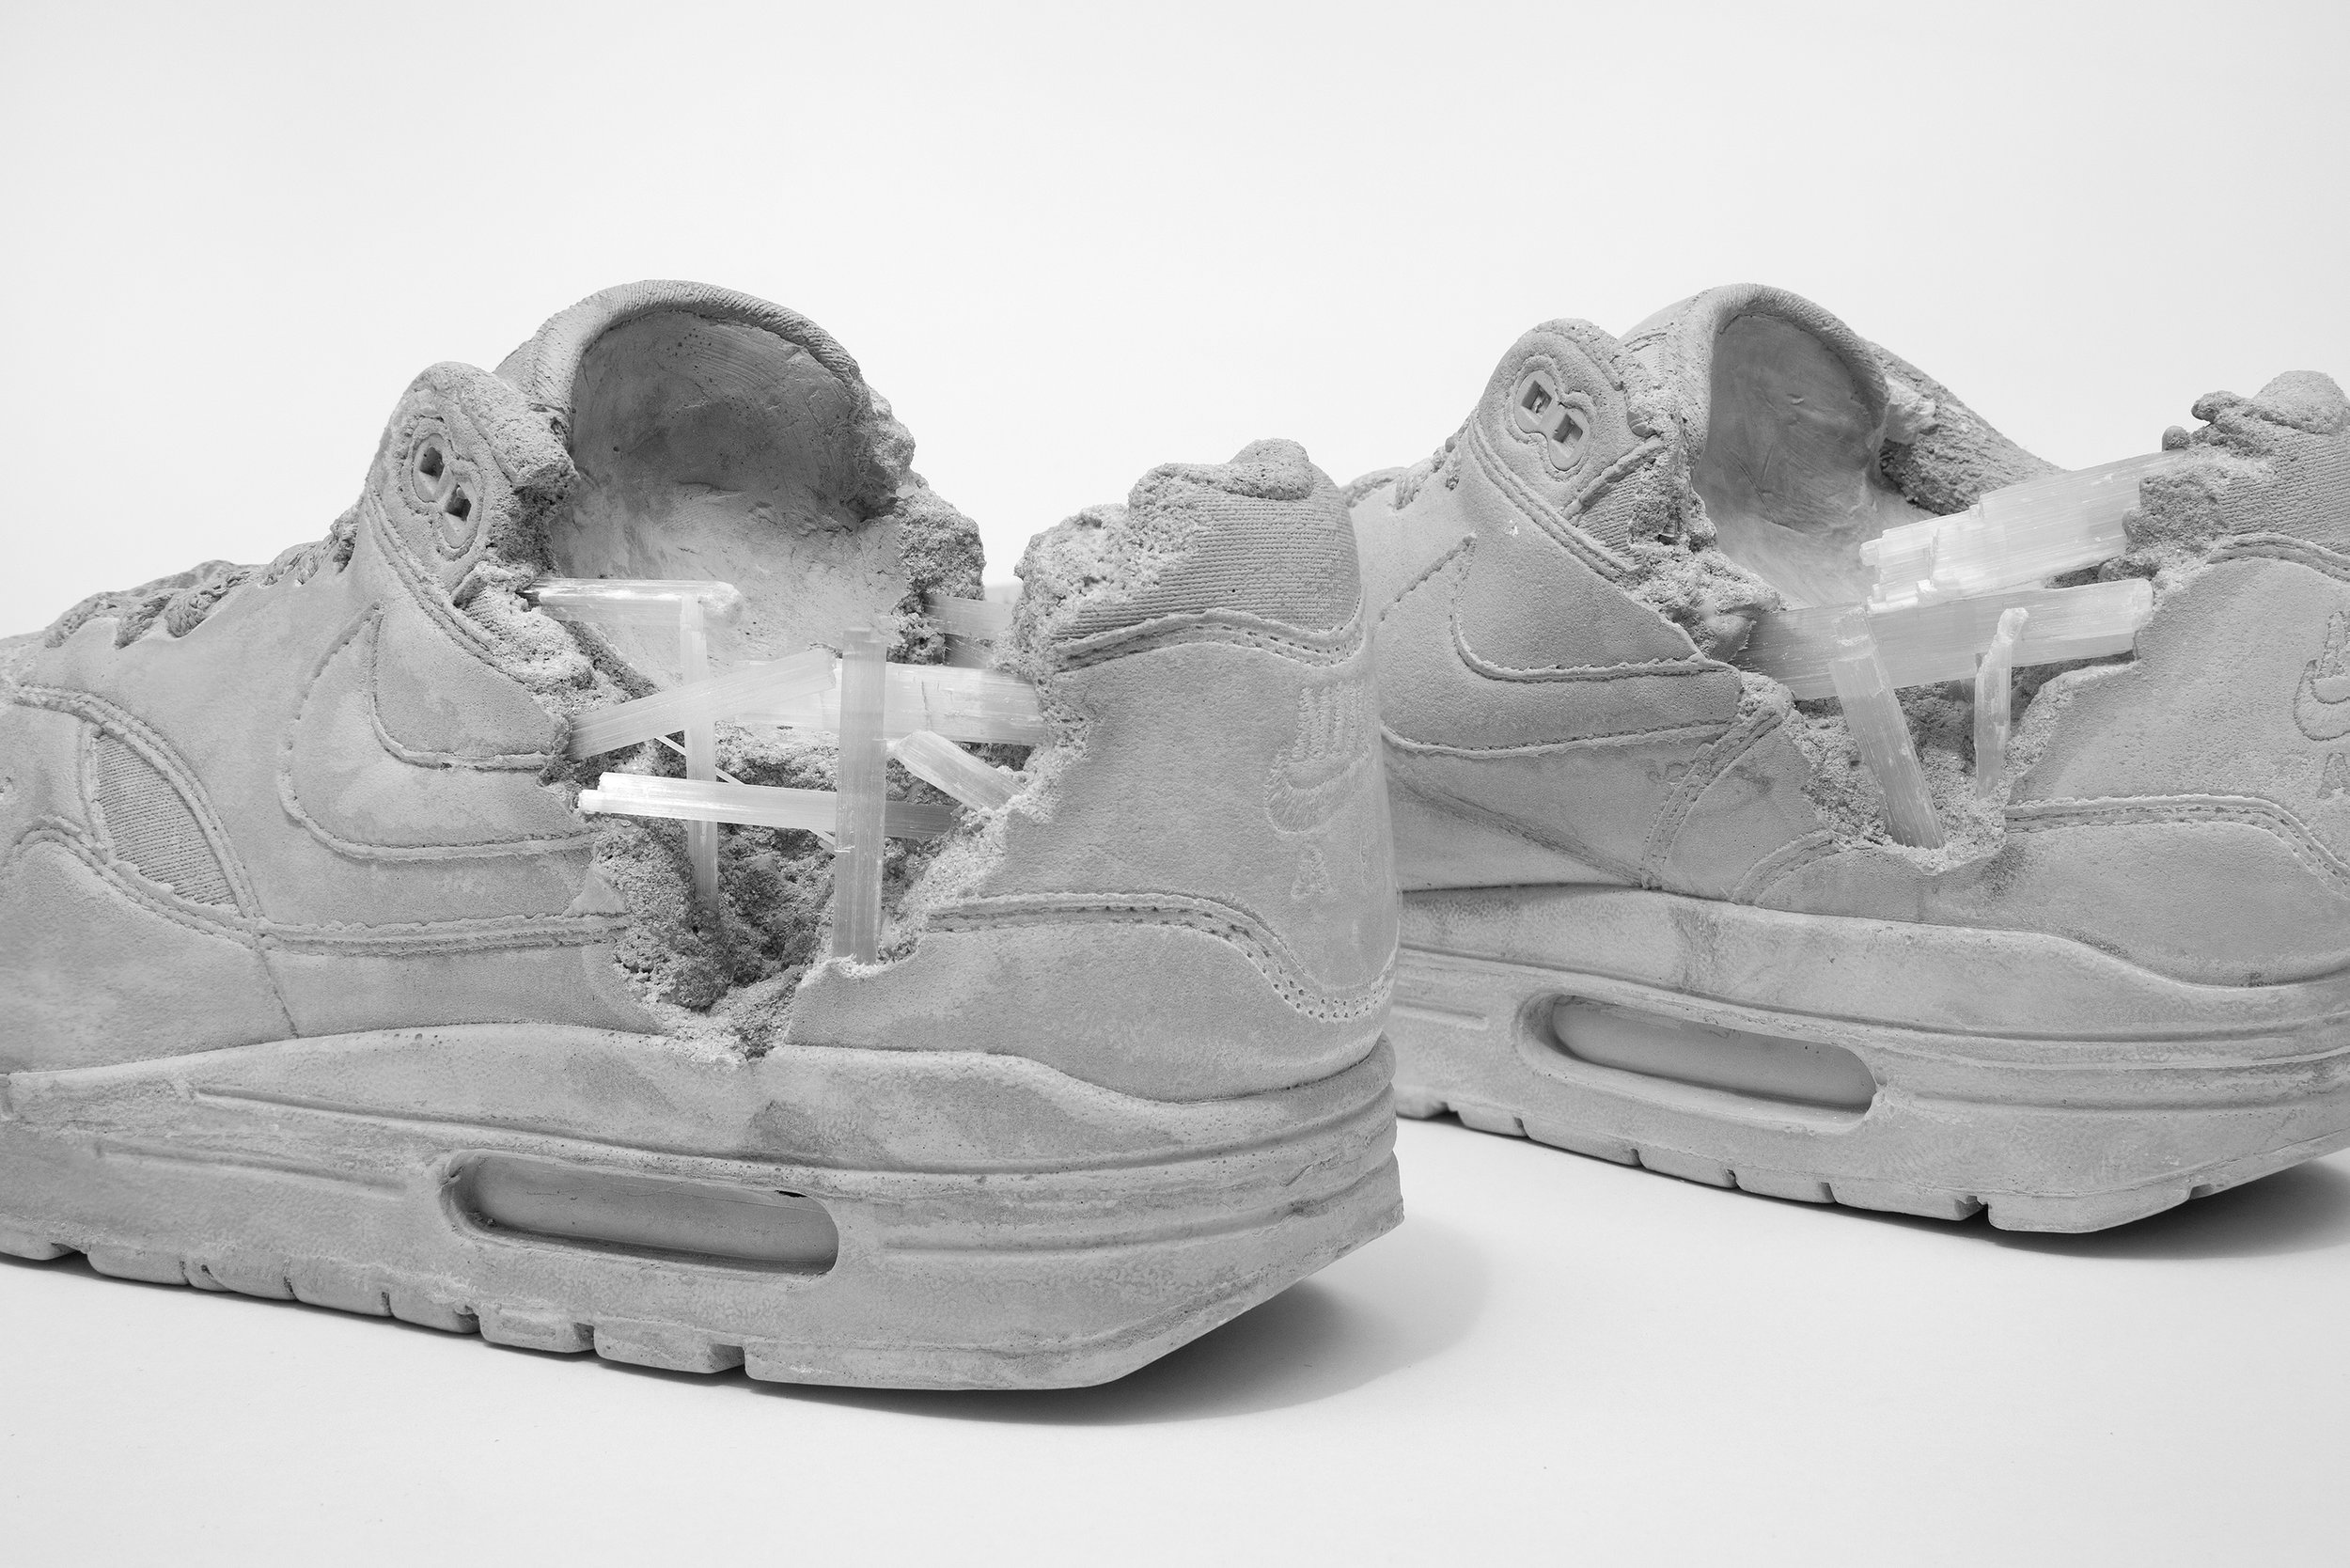 Daniel Arsham  - Grey Selenite Eroded Sneakers (Pair), 2019 Selenite, hydrostone, aluminum oxide 5 x 11.75 x 3.5 in. (each shoe)